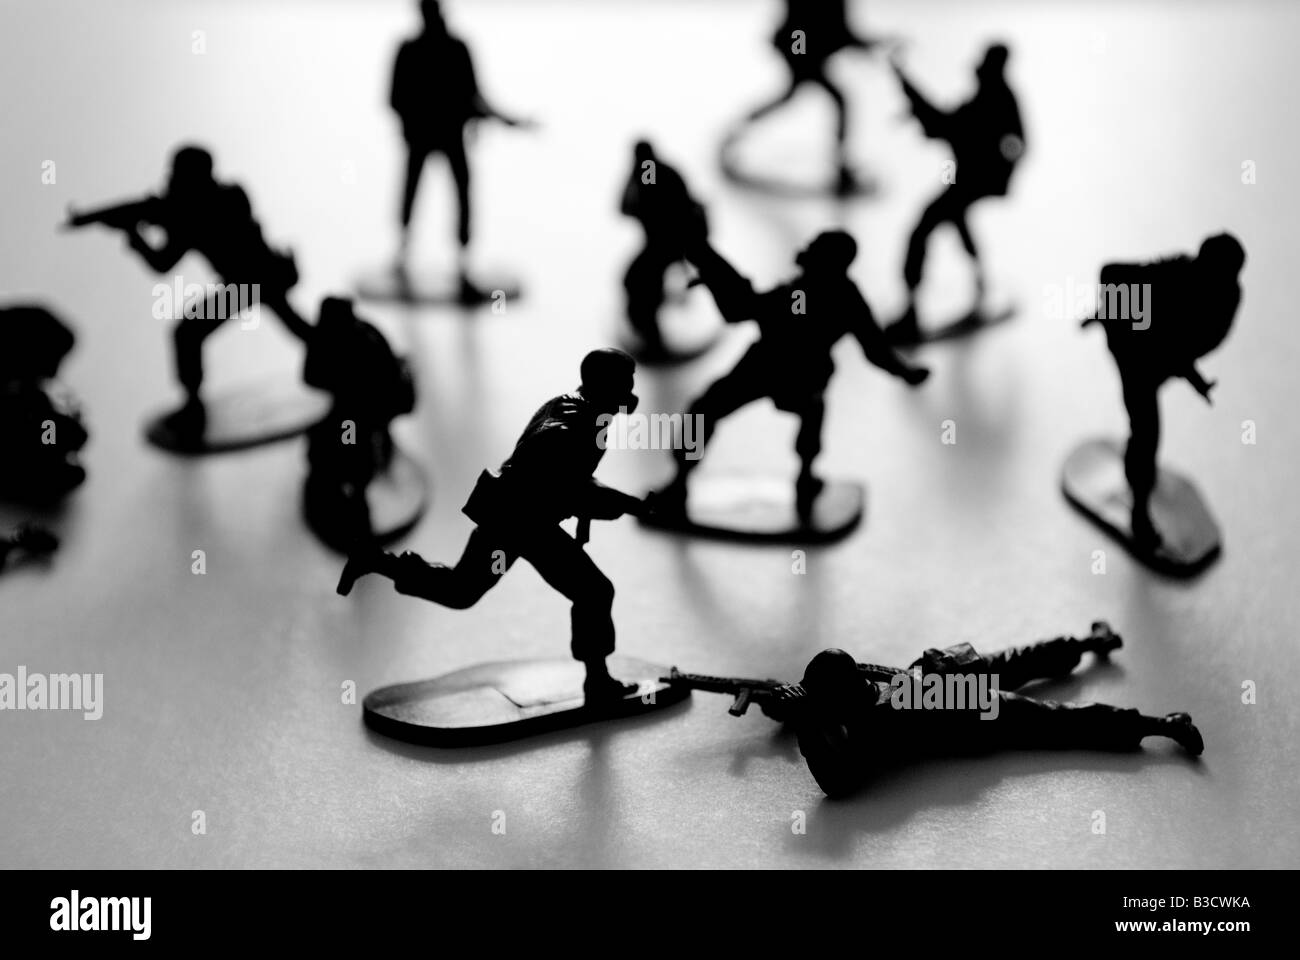 toy soldiers - Stock Image